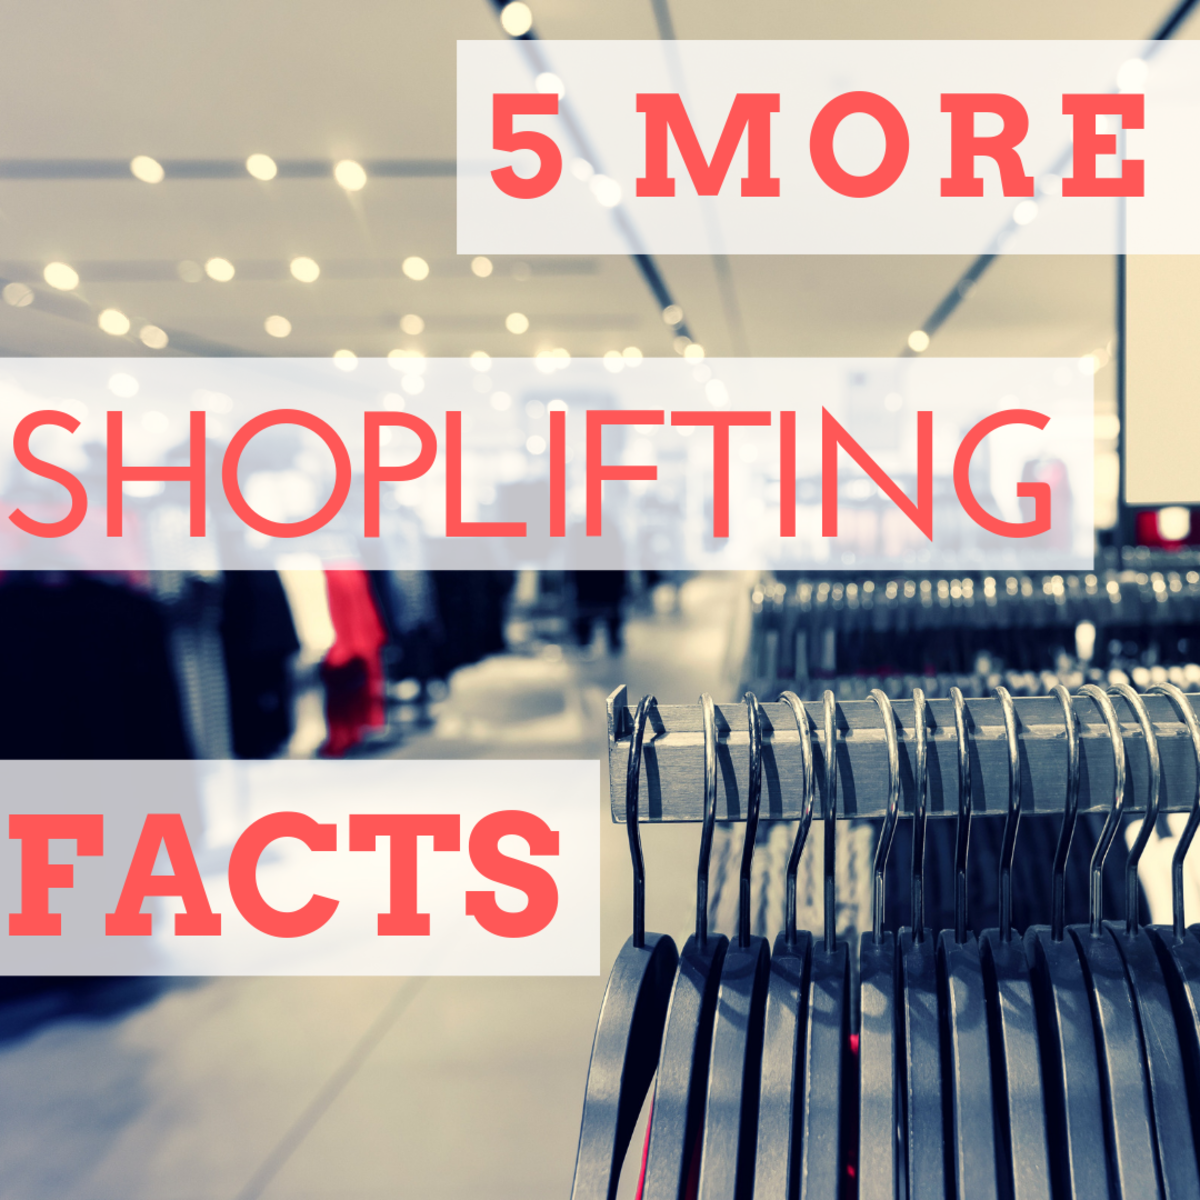 5 More Facts About Shoplifting